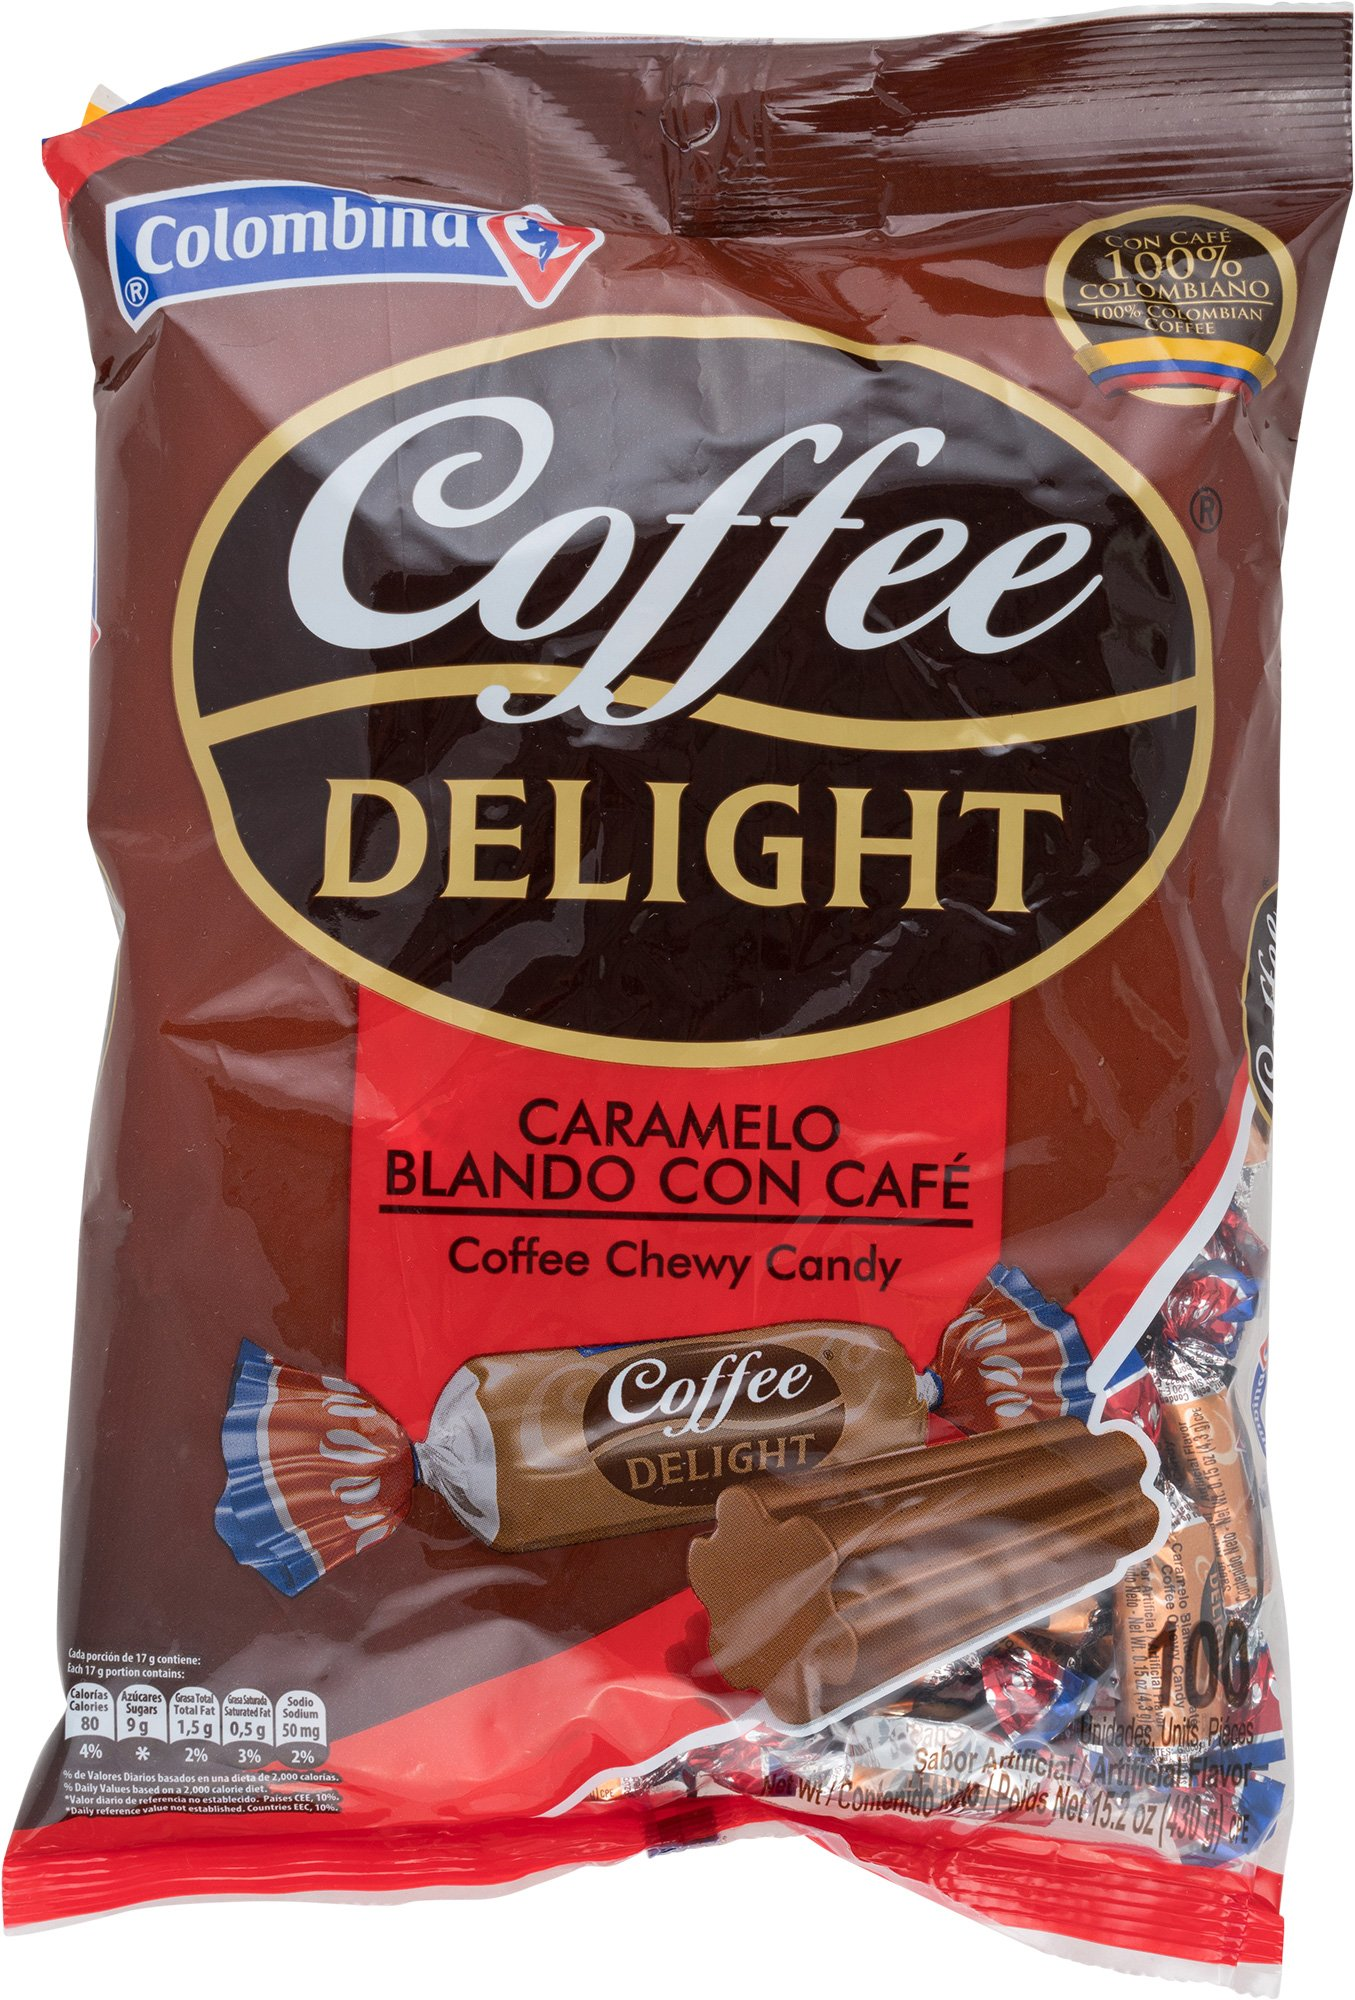 Colombina Coffee Delight 100% Colombian Coffee Soft Candy 100 Units